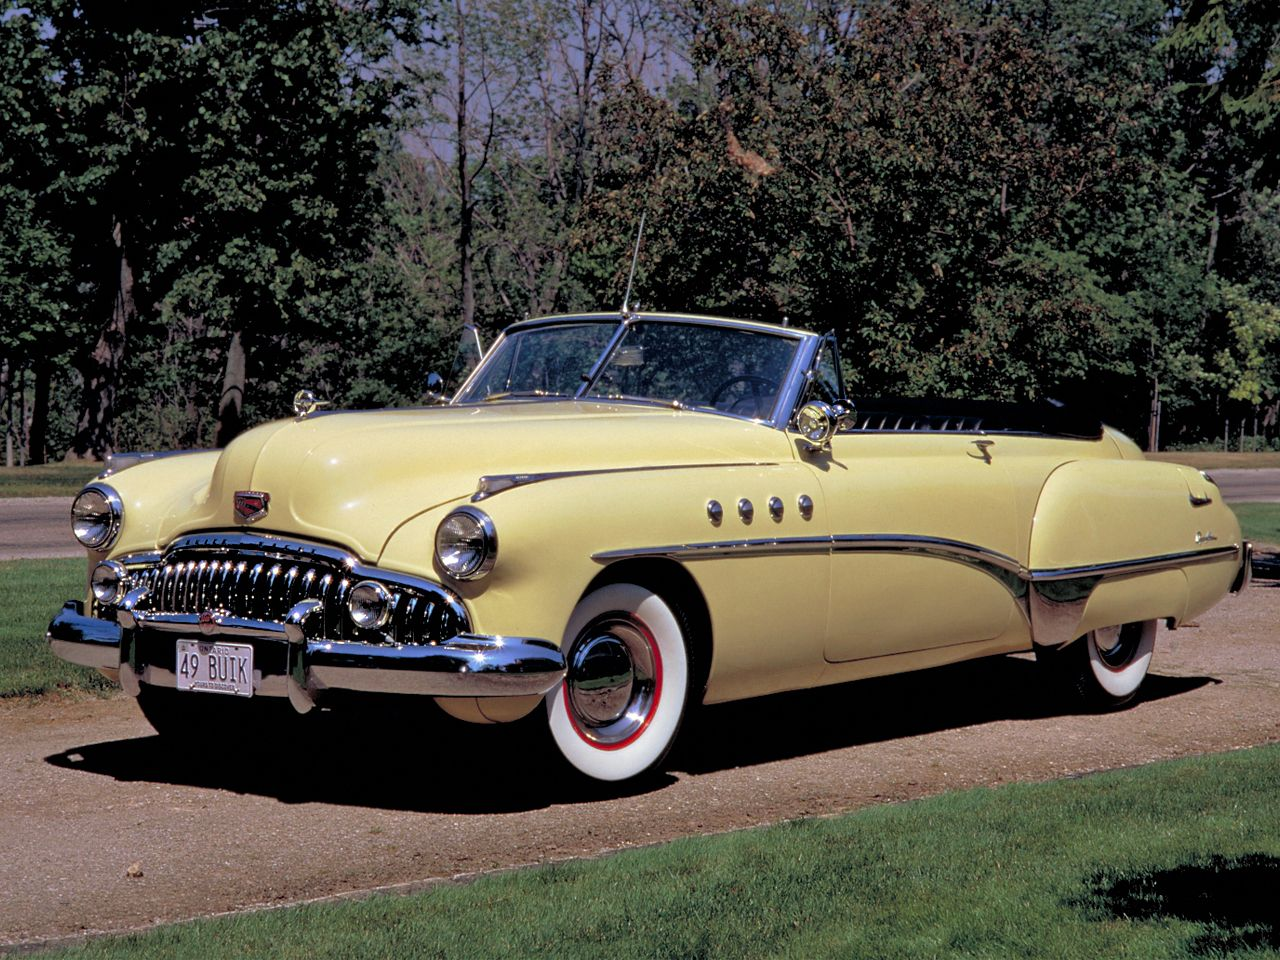 1949 Buick Roadmaster Riviera Convertible What A Beauty